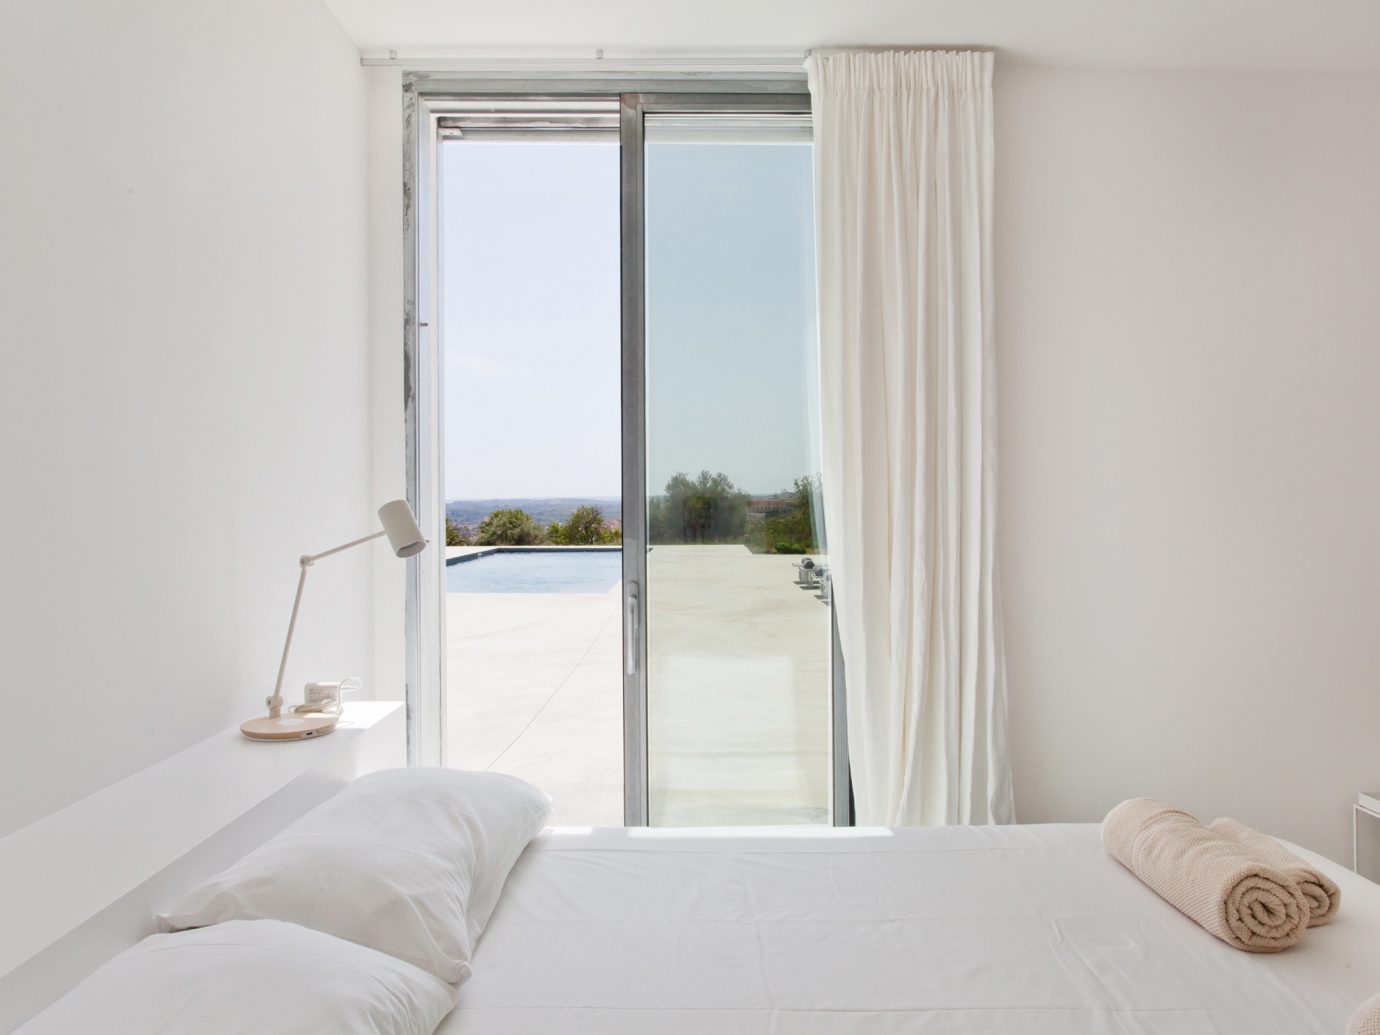 indoor wall bed window room white property Bedroom interior design pillow cottage Suite real estate apartment curtain